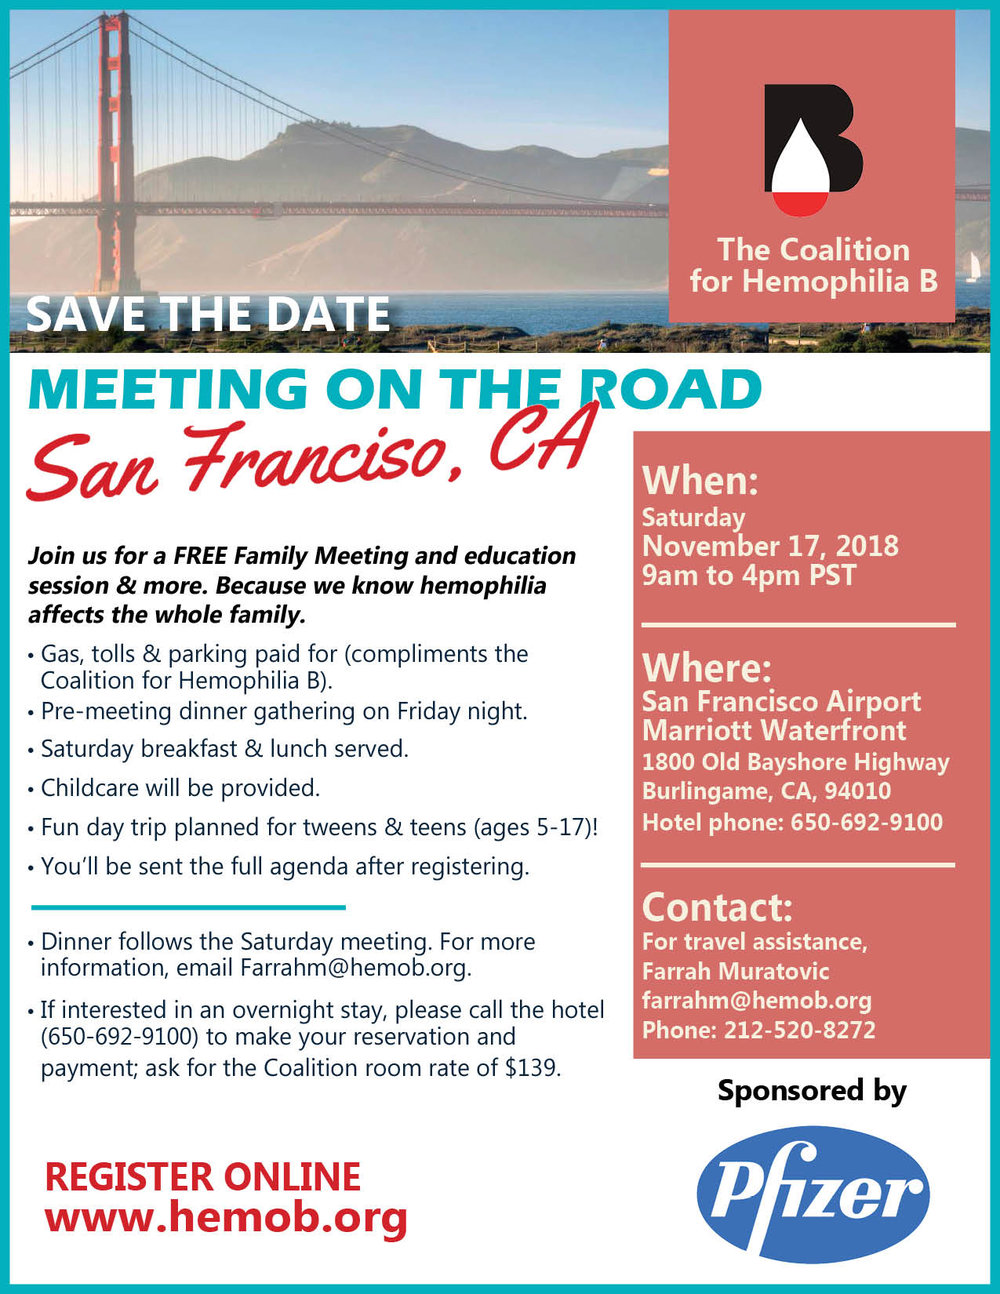 - Download our official San Francisco meeting flyer HERE